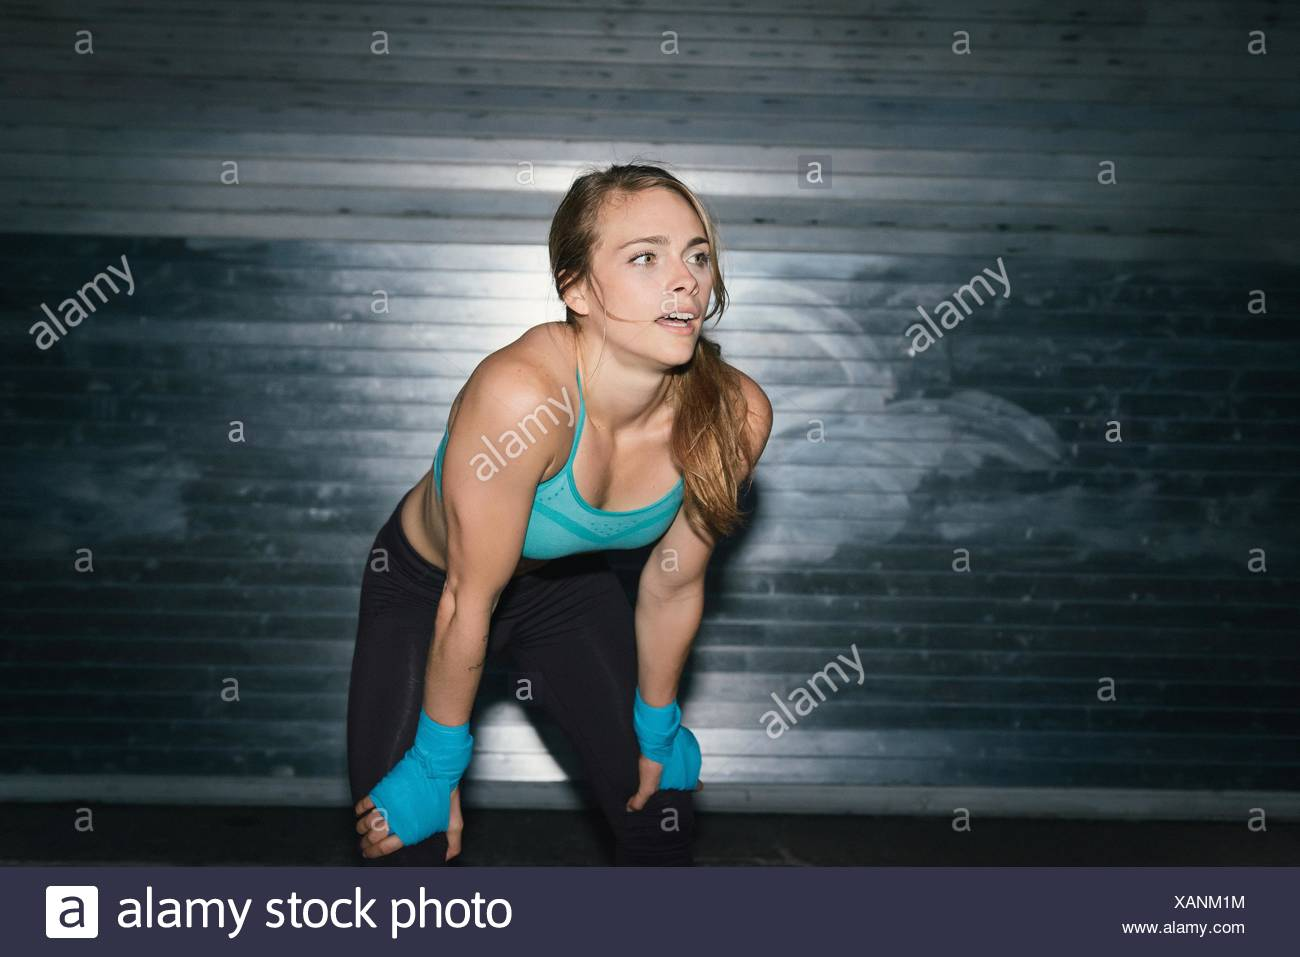 Young woman, working out, hands on knees, outdoors, at night - Stock Image